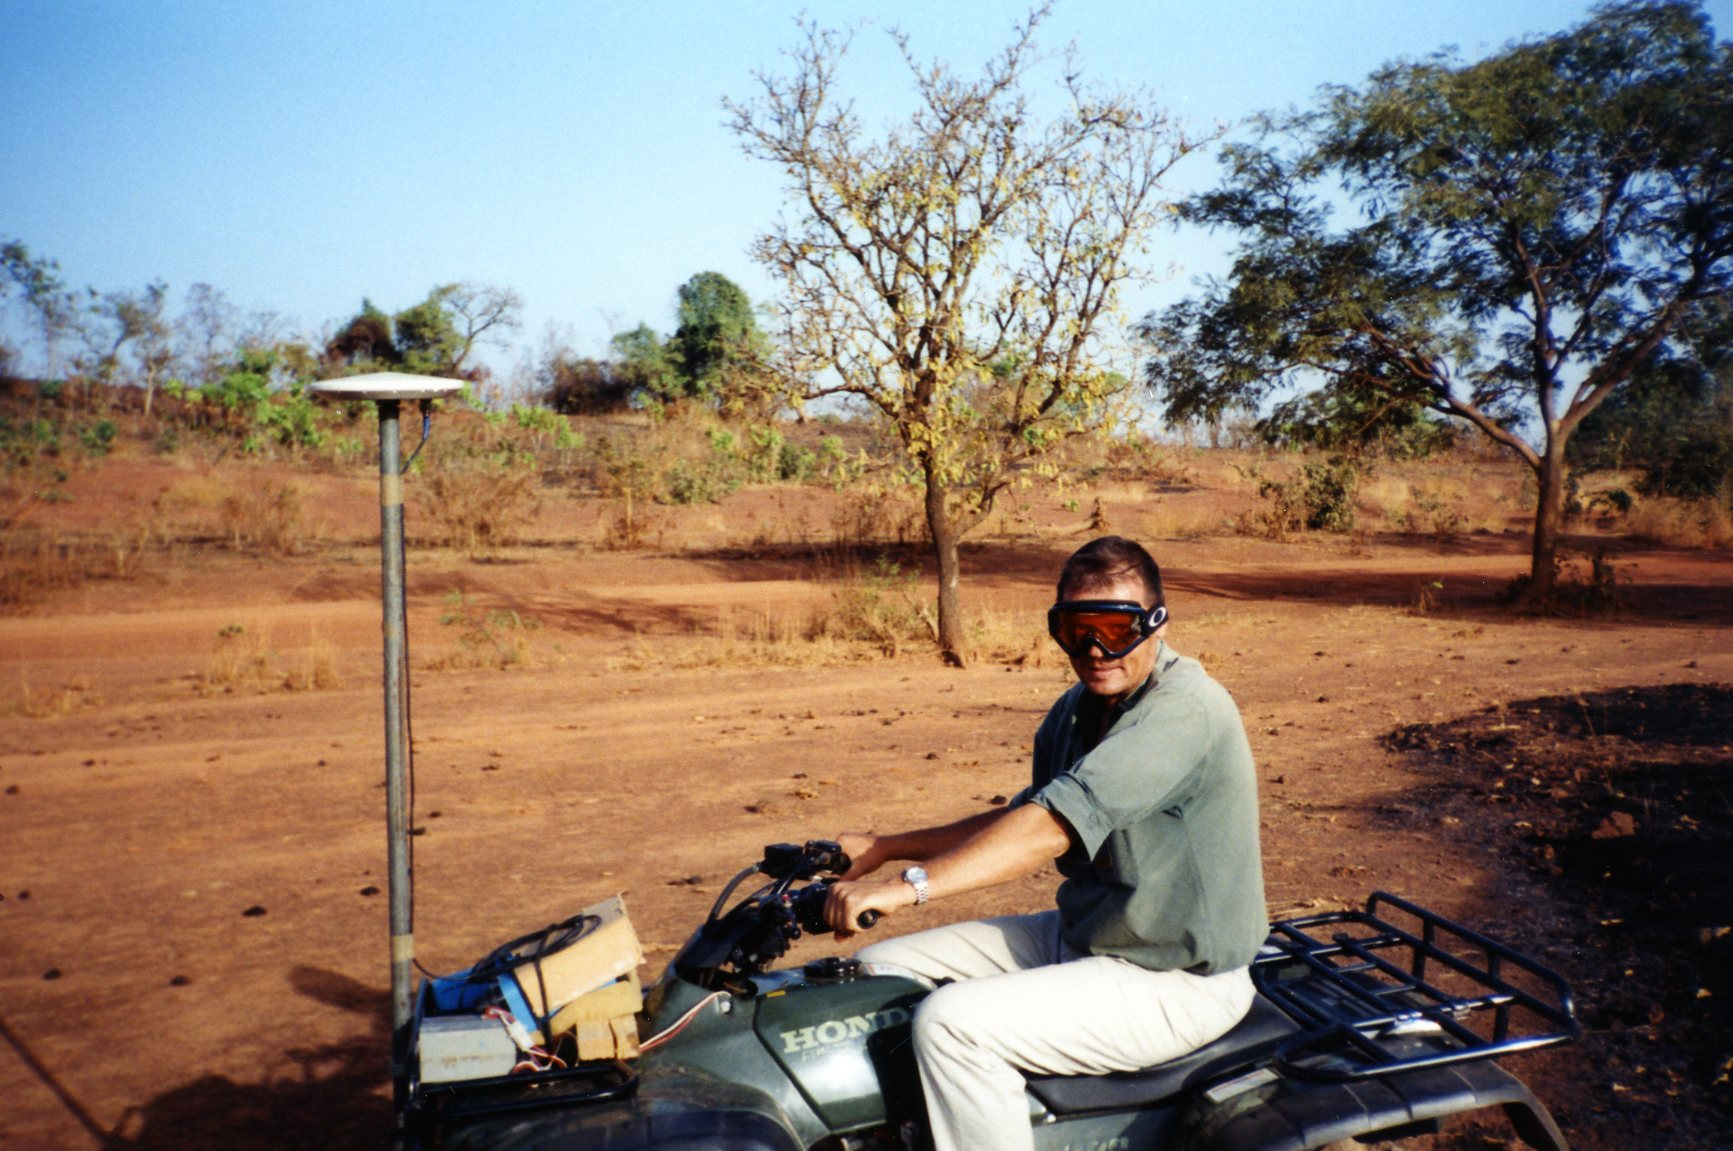 surveying with a quad bike in Africa